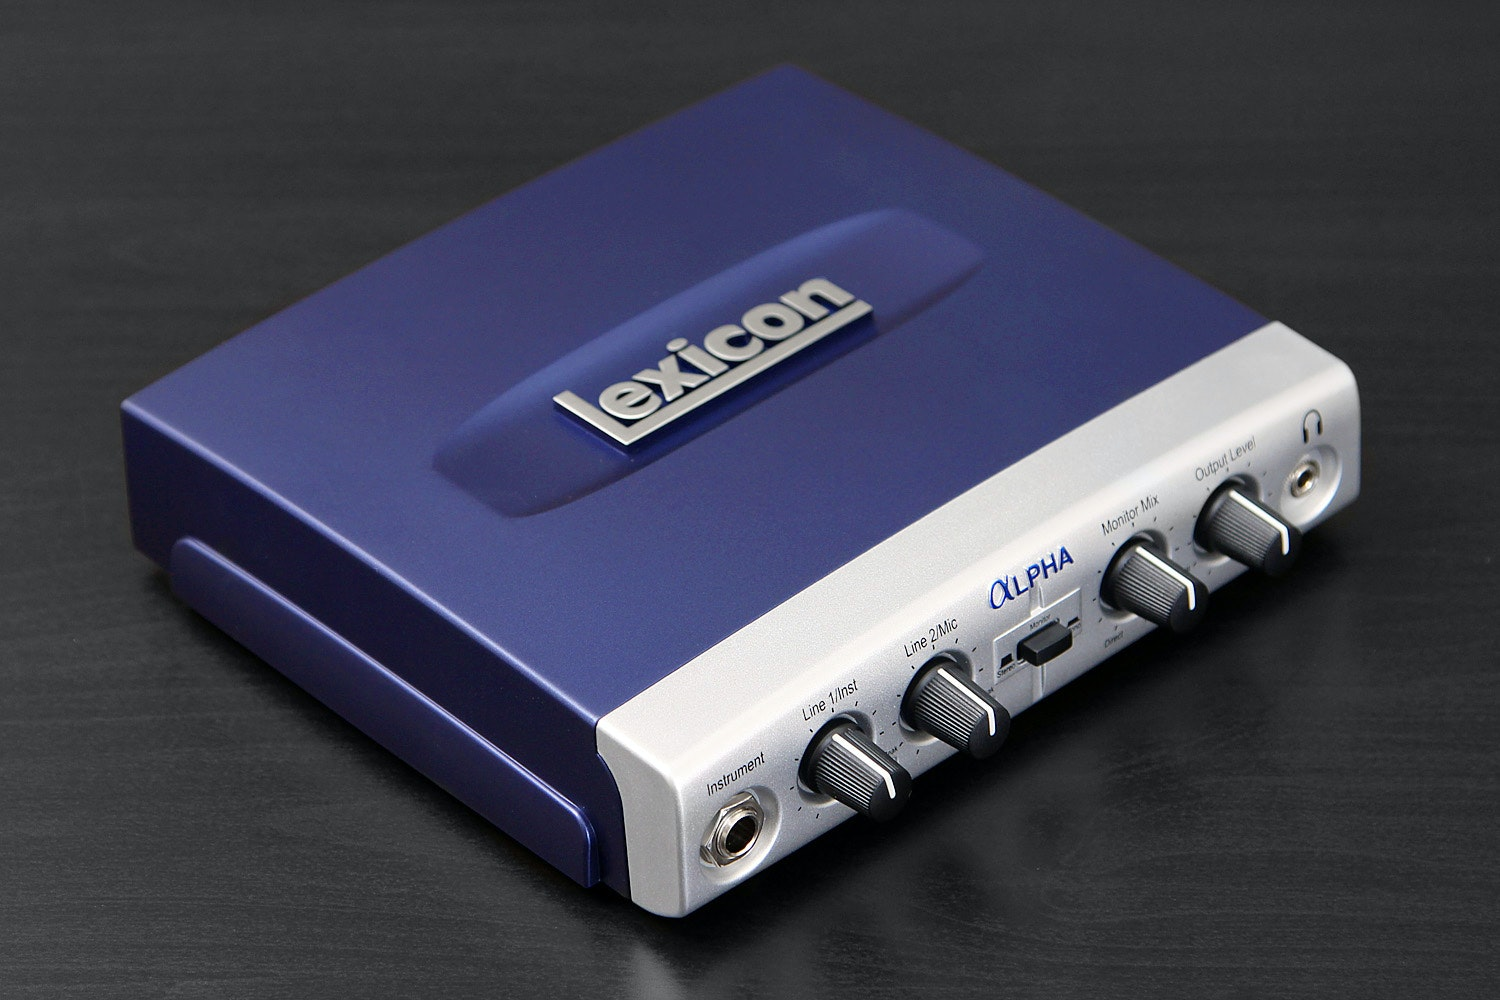 Lexicon Alpha 2x2x2 Desktop Recording Studio